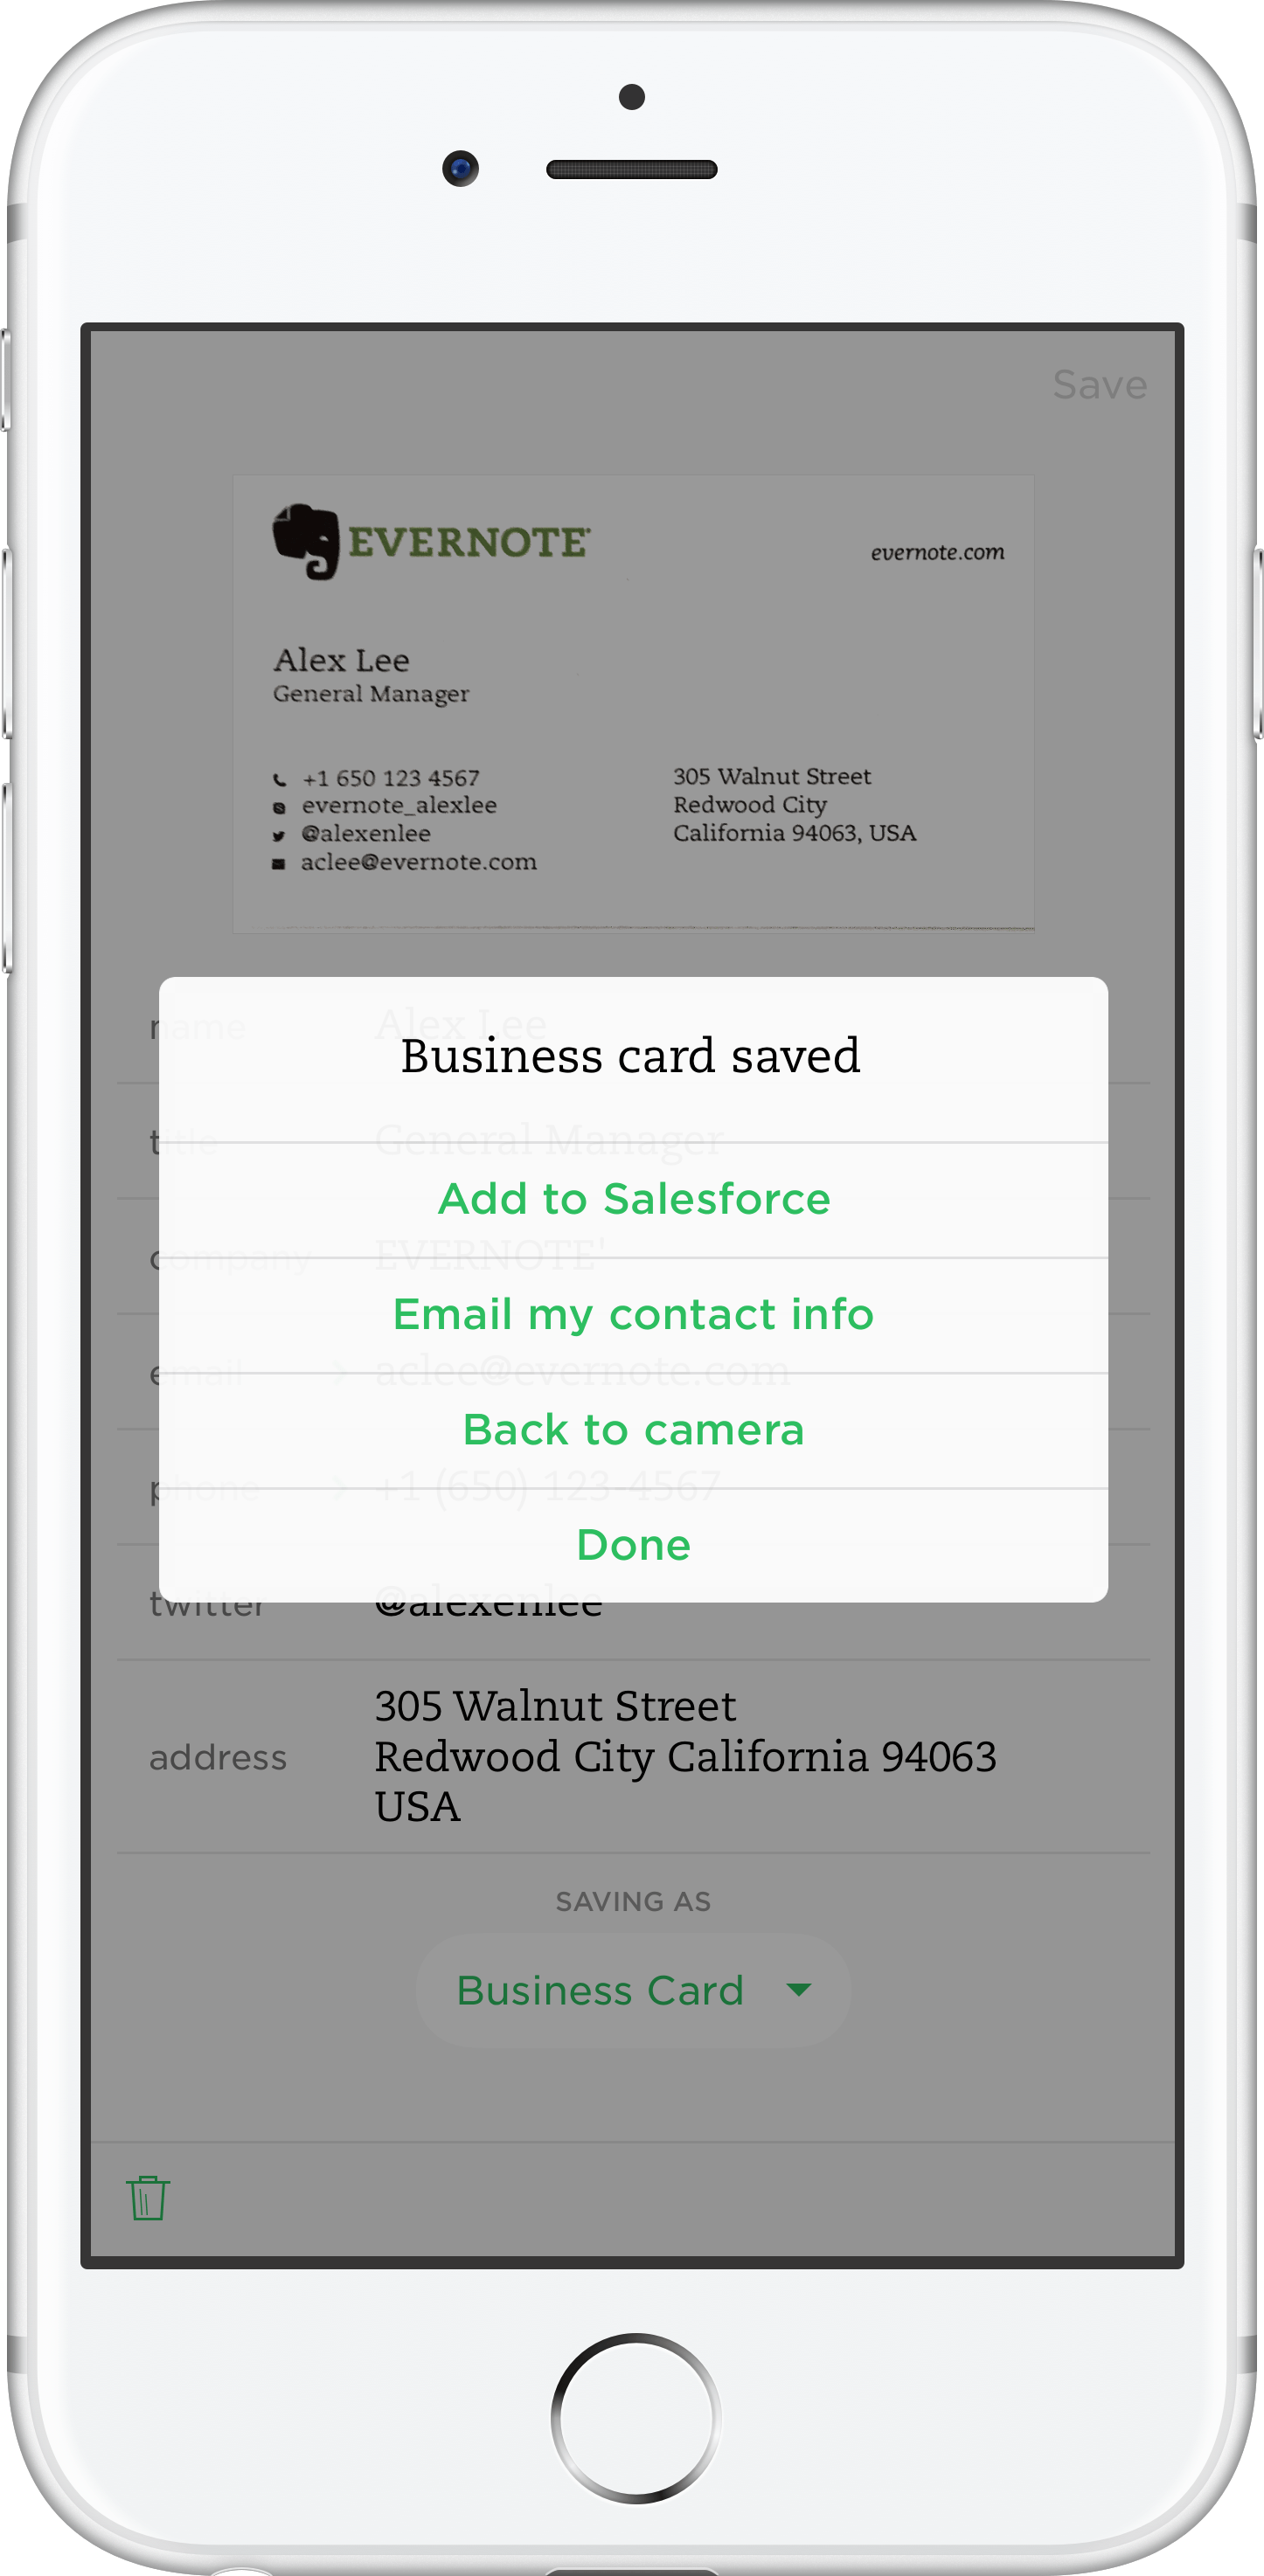 save business cards scanned with evernote in salesforce - Salesforce Business Card Scanner